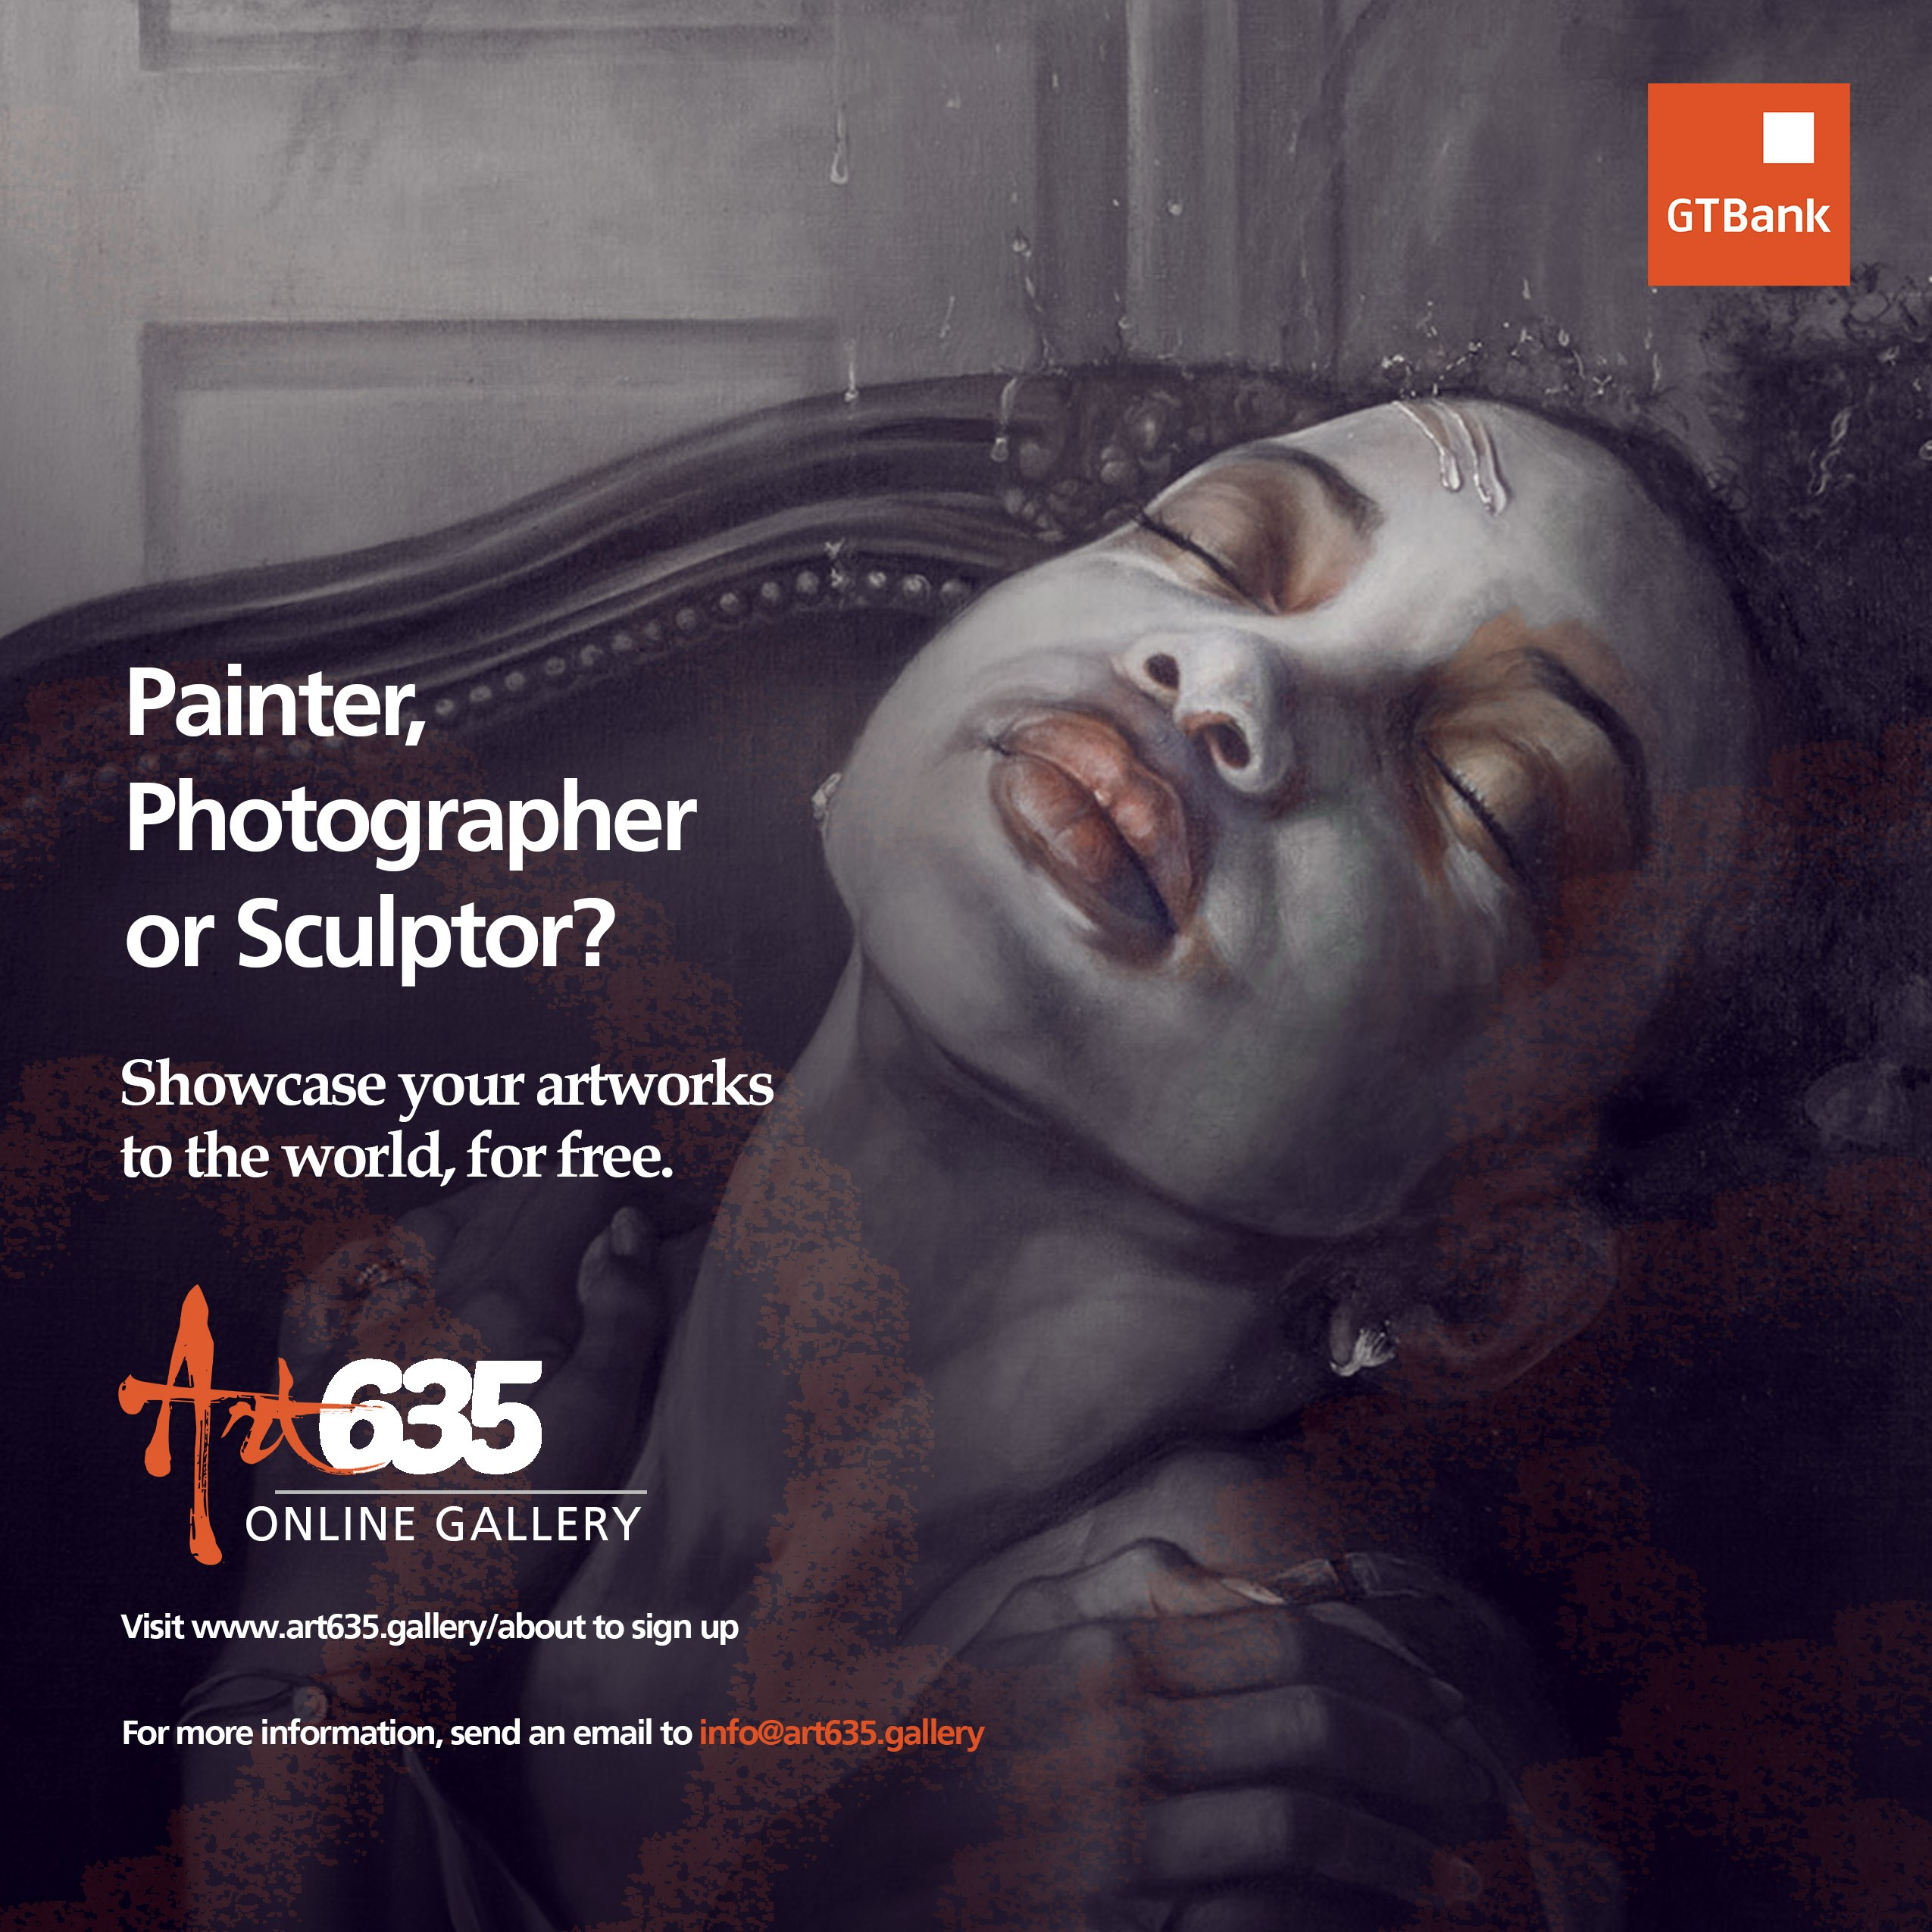 GTBank's Art635 Gallery calls for Artists, Painters, & Sculptors